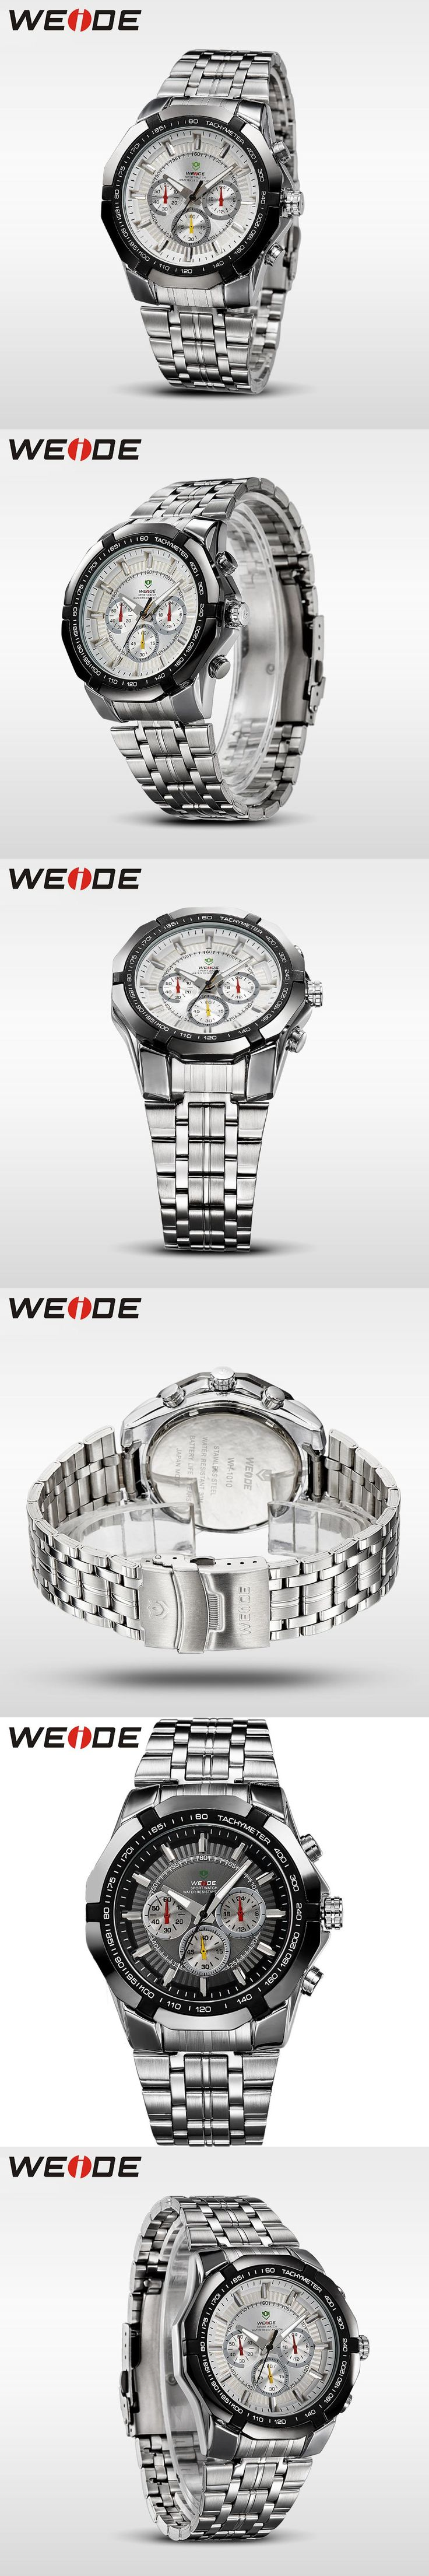 WEIDE New Sports Japan Quartz Watch Men Military 30 Meters Waterproof Full Stainless Steel White Dial Wristwatches Sale Items